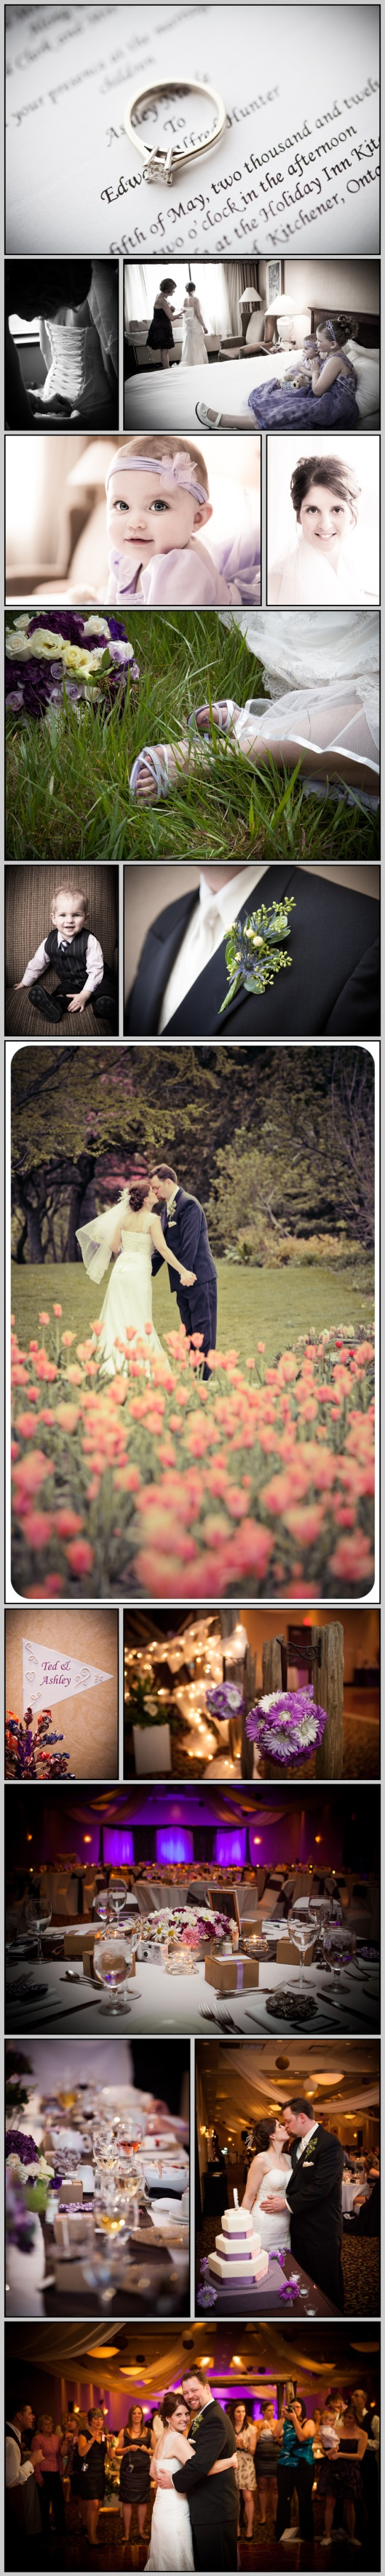 Rockway Gardens wedding photos